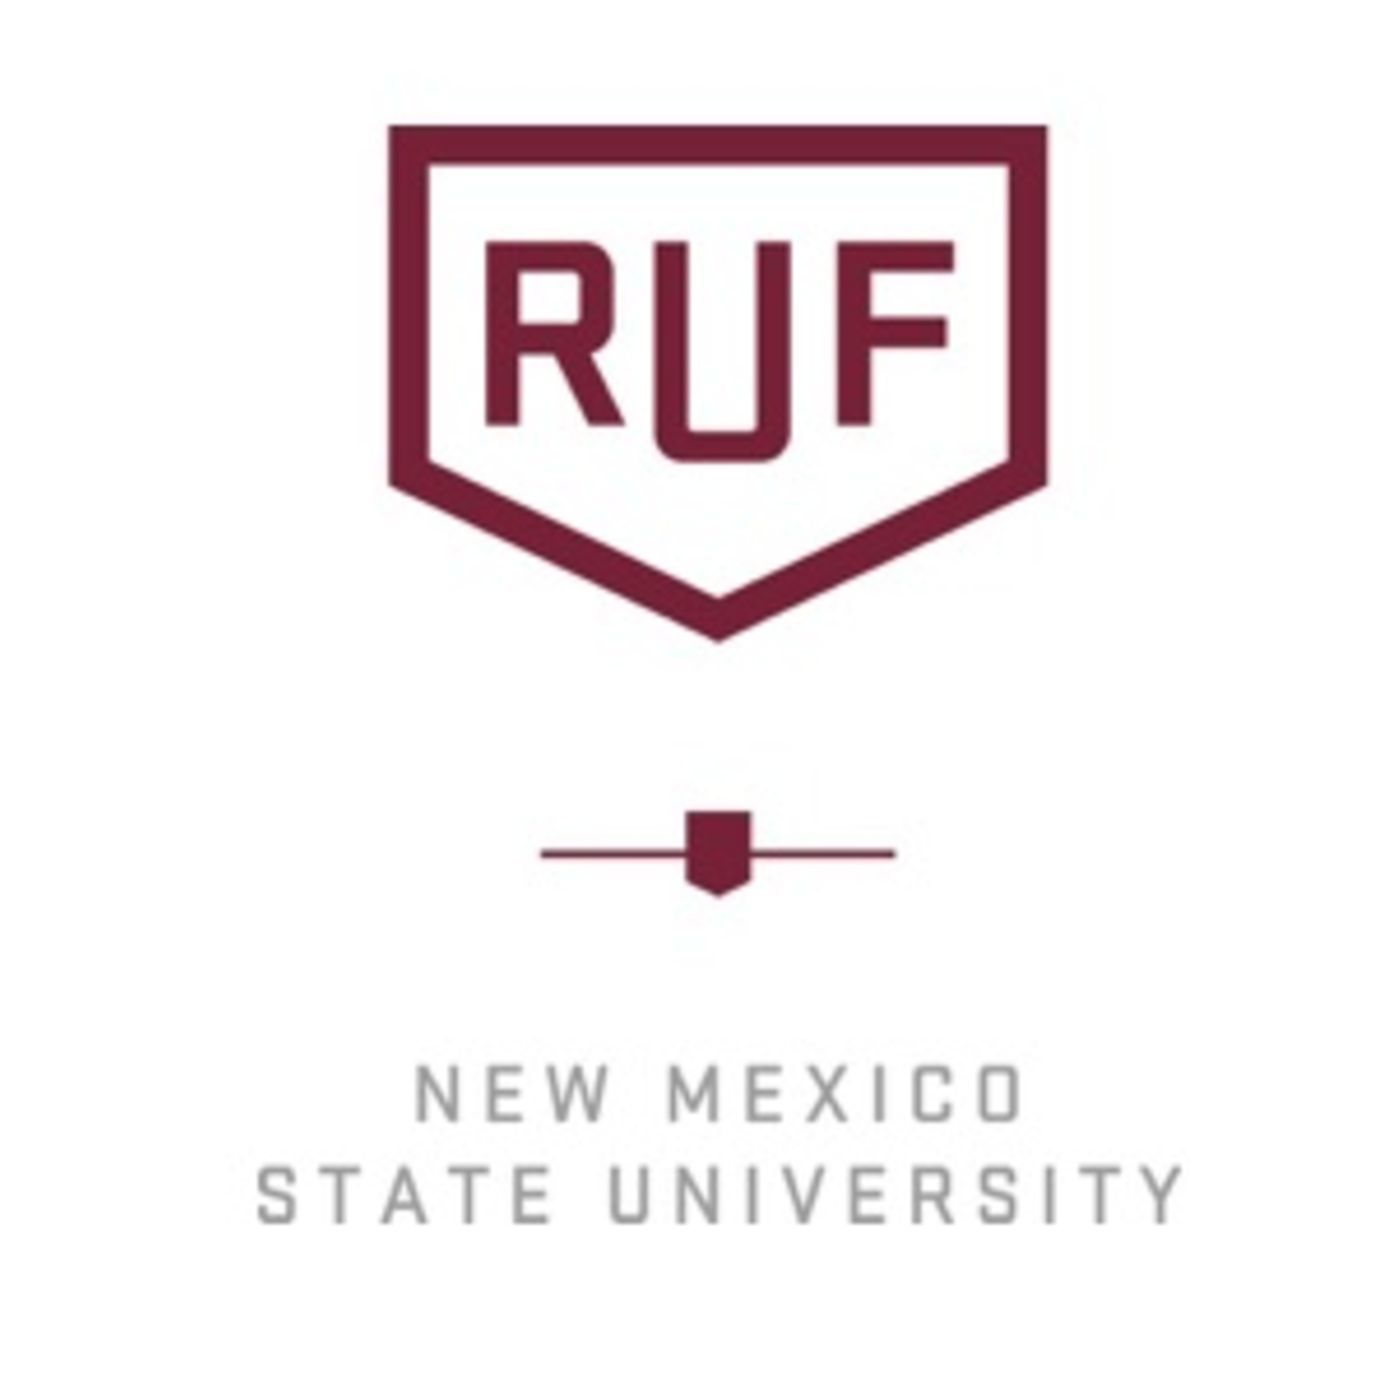 RUF at New Mexico State University